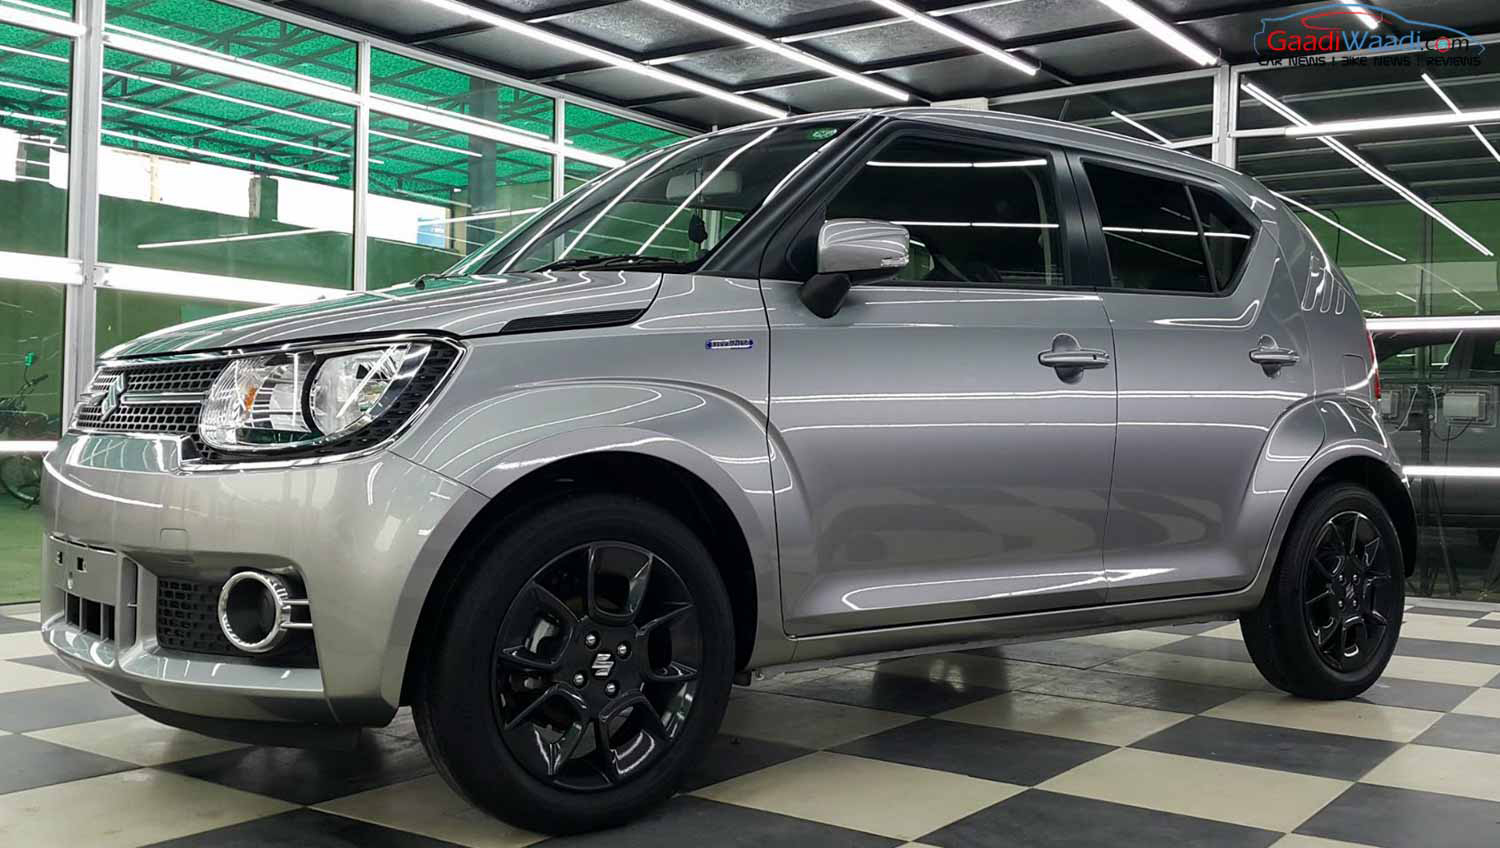 Maruti Suzuki Ignis production version spotted - Autodevot